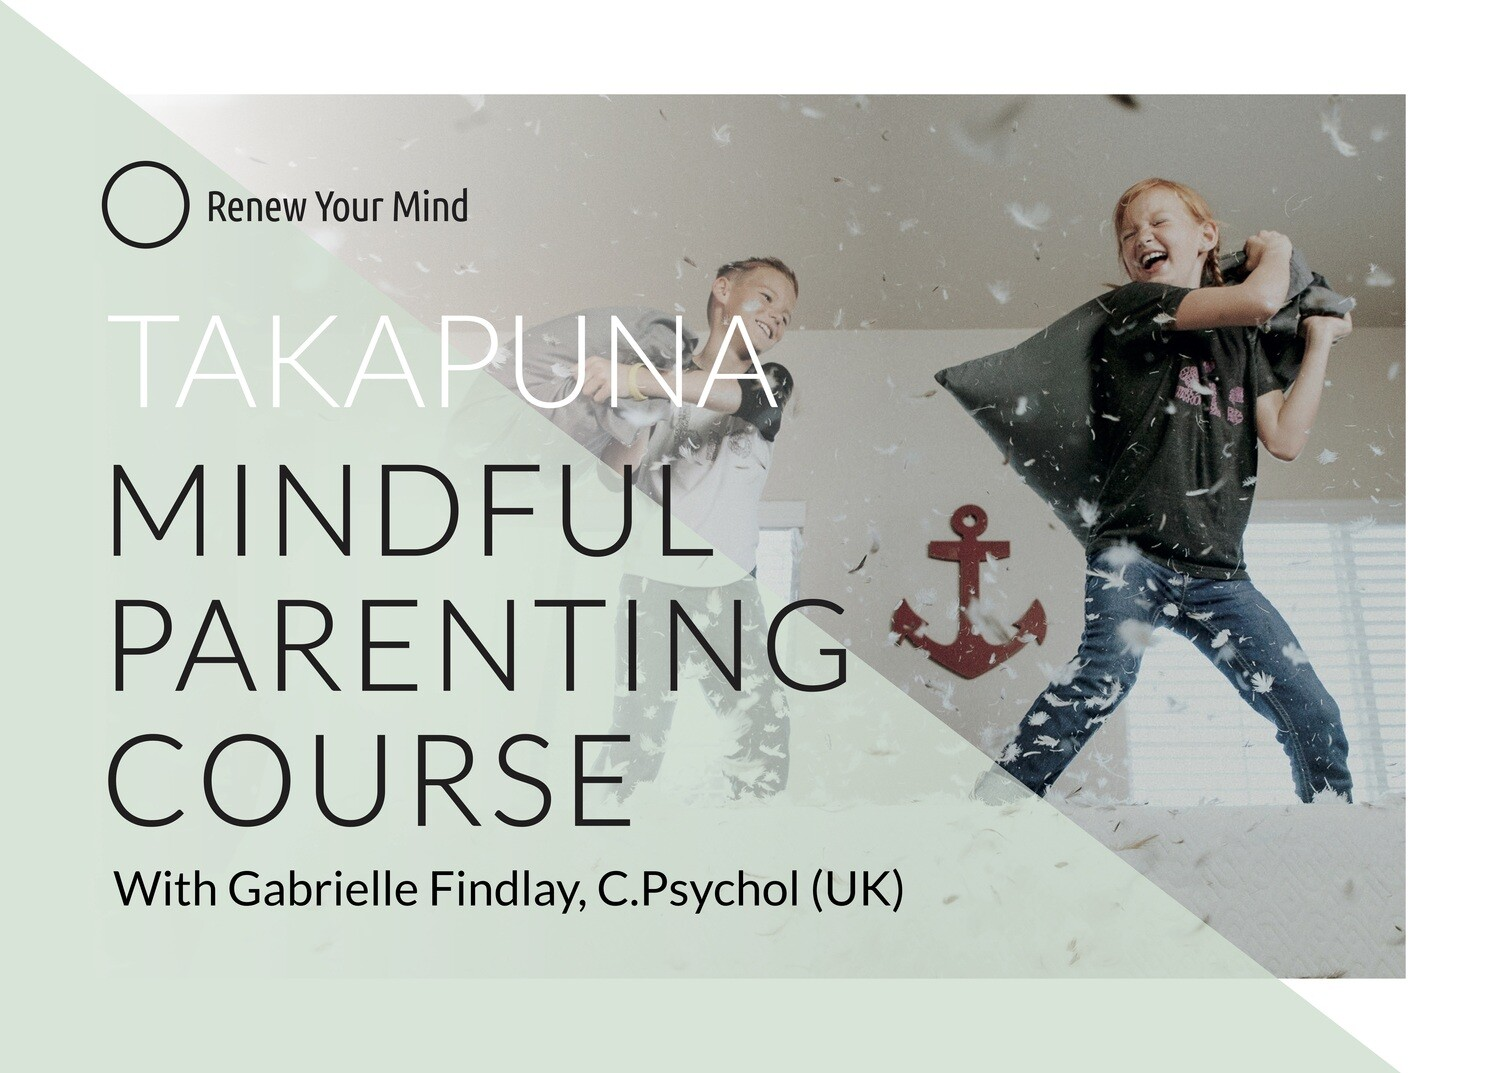 Takapuna Mindful Parenting course: 6 session course starting 12 May '21